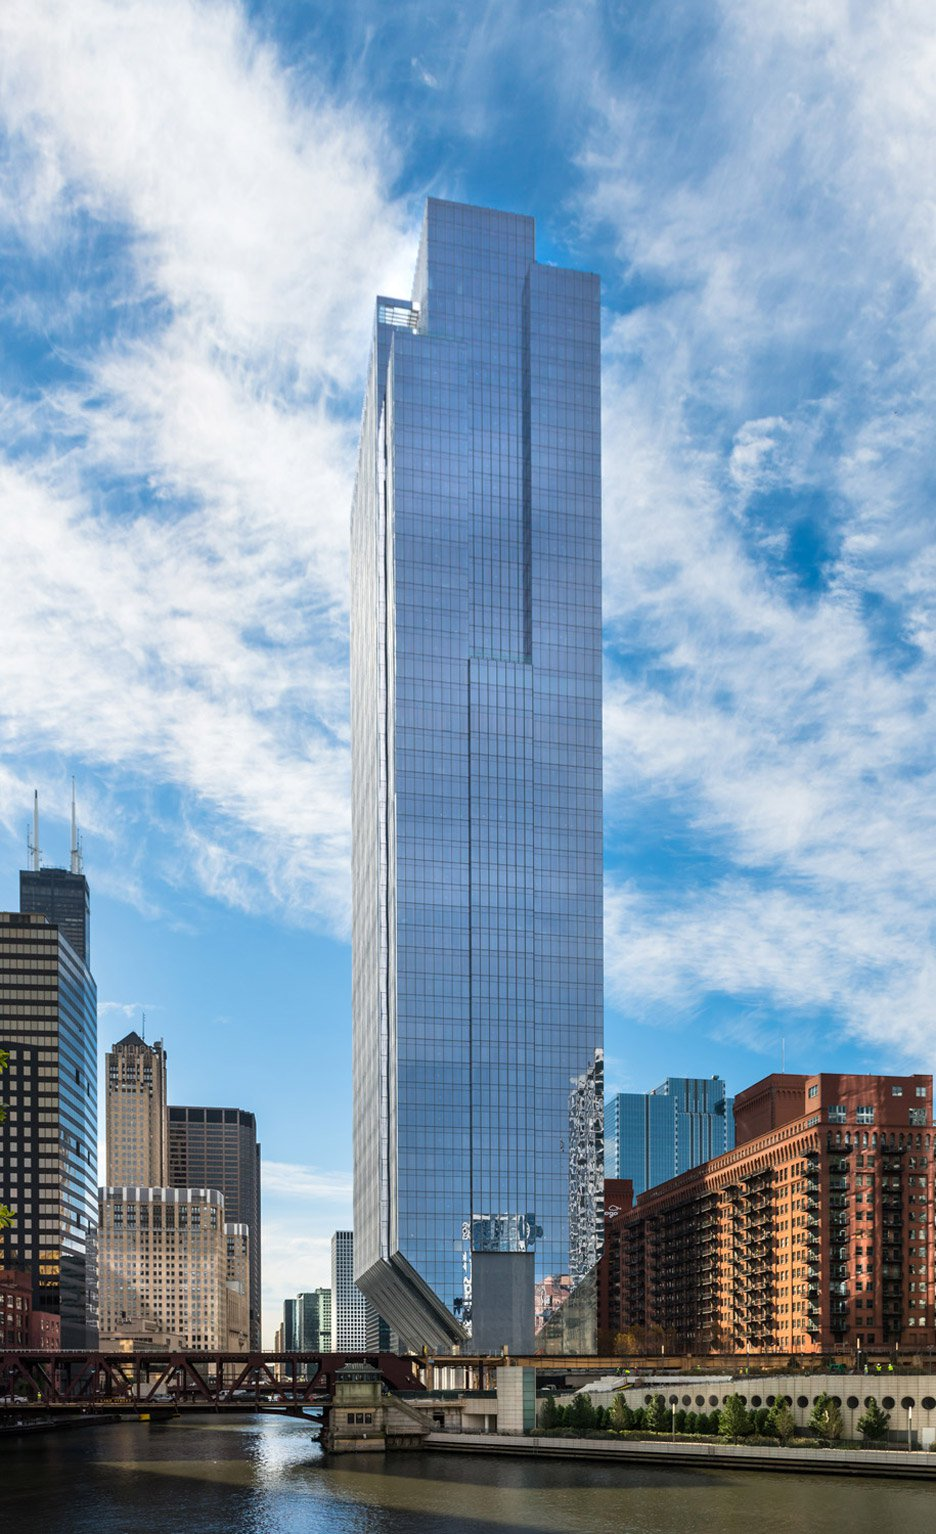 150-north-riverside-office-tower-chiacgo-developer-riverside-investment-development-west-loop-waterfront-river-goettsch-partners-architecture-skyscraper-usa-american_dezeen_10.jpg